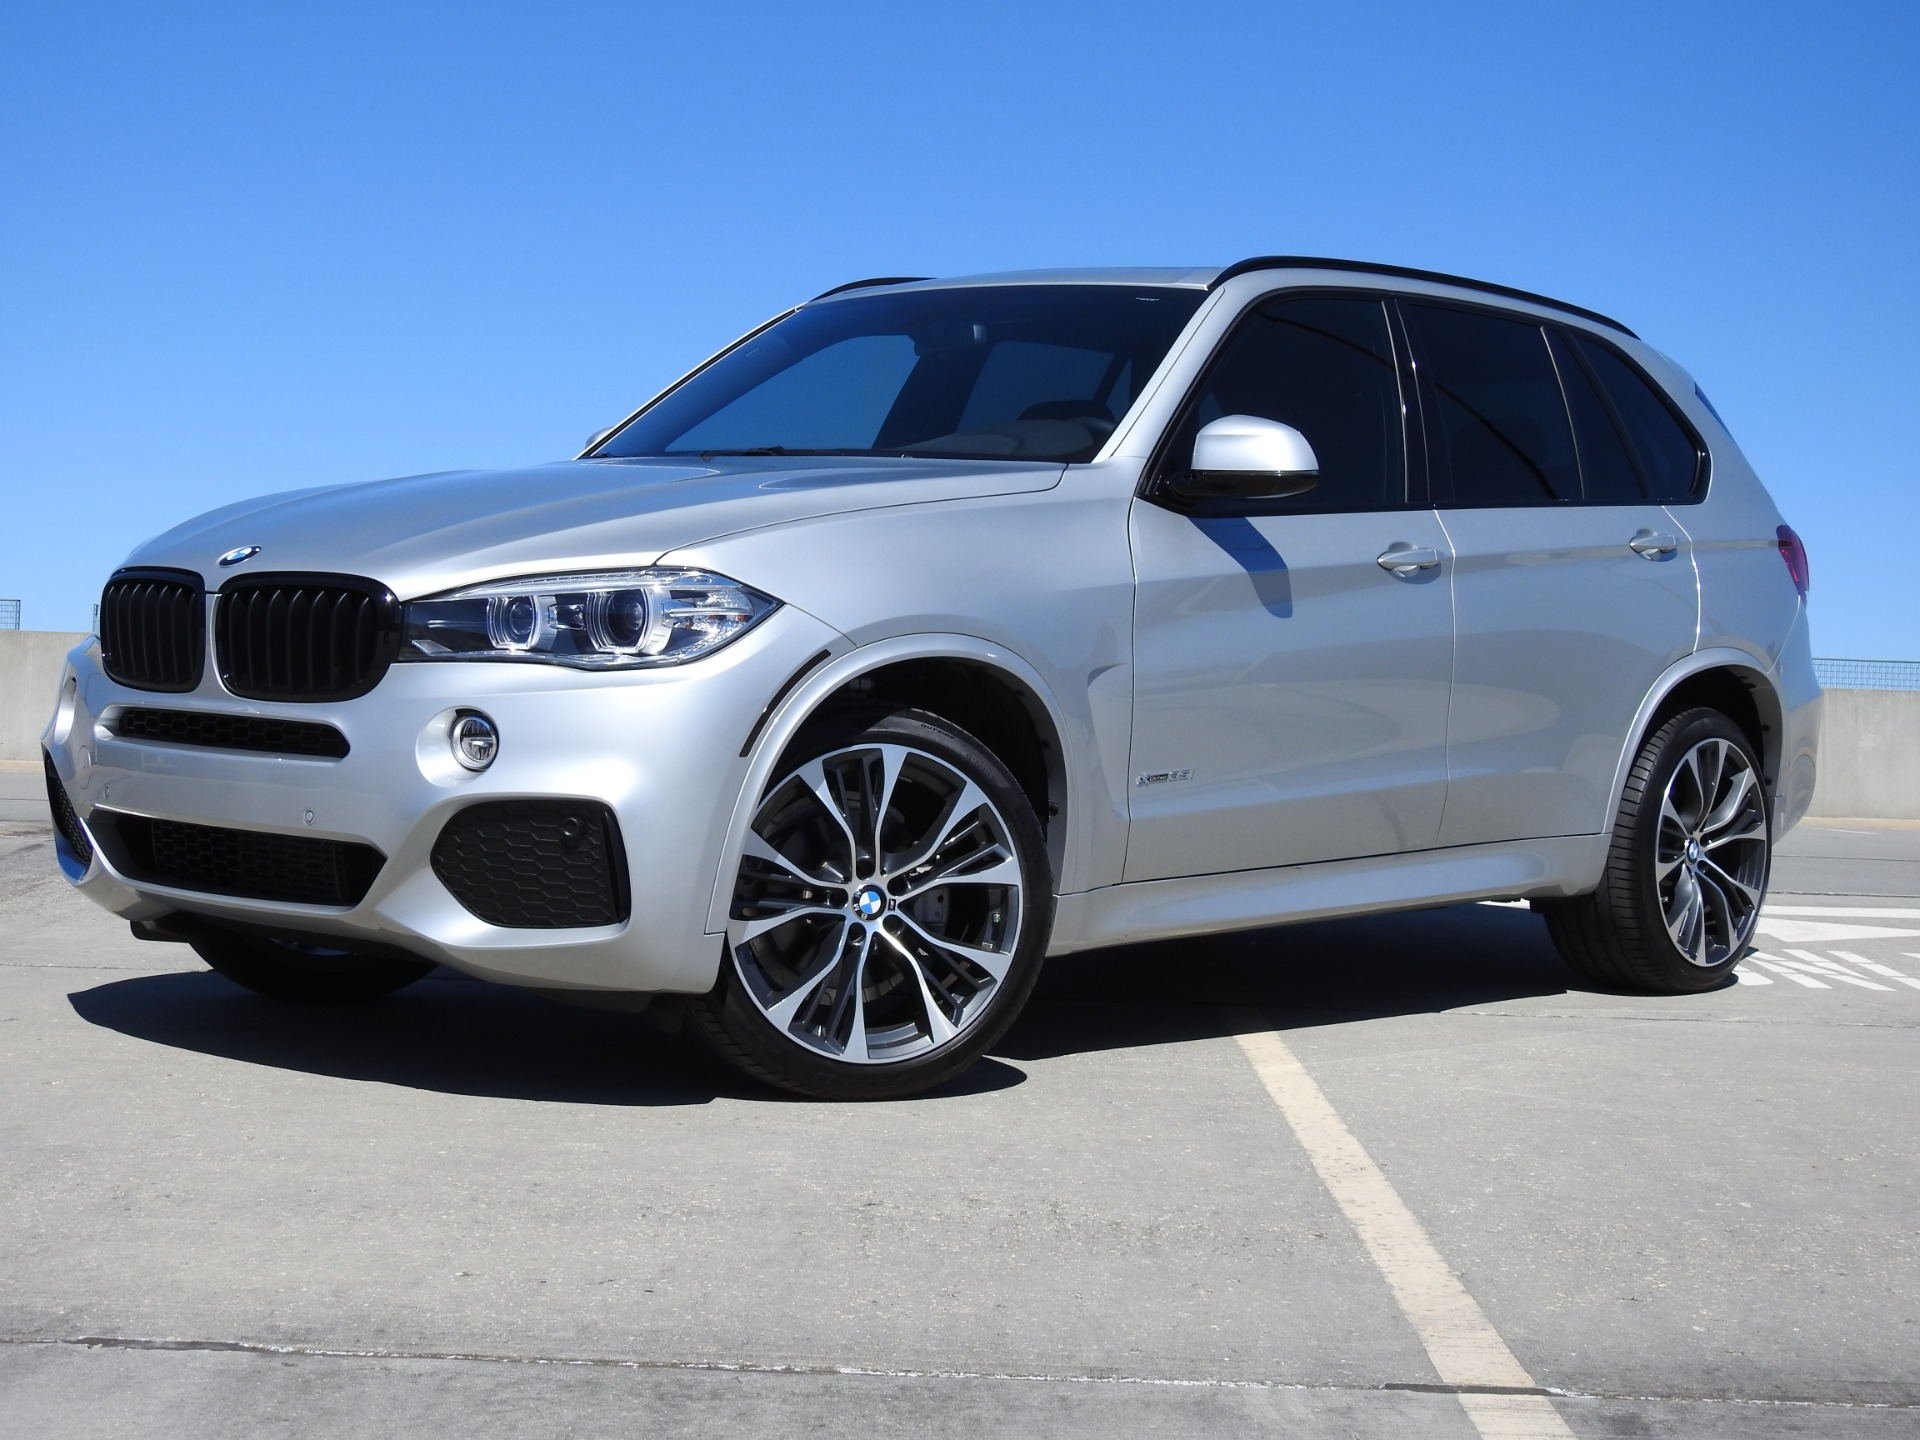 Bmw Jackson Ms >> 2016 Bmw X5 Xdrive35i Msport Stock G0p22914 For Sale Near Jackson